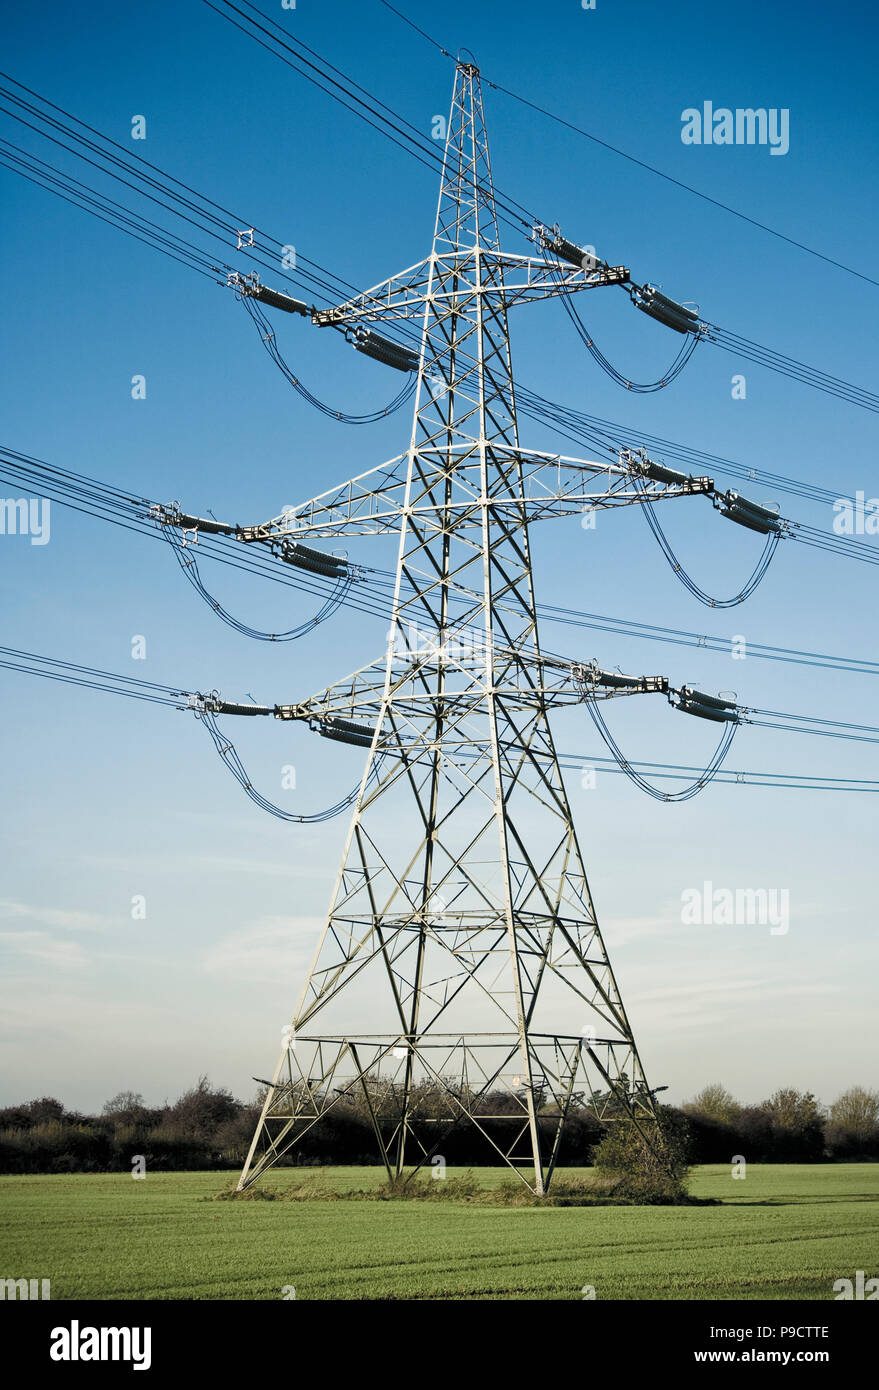 Rural countryside Electricity Pylon in a field of crops, England, UK - Stock Image